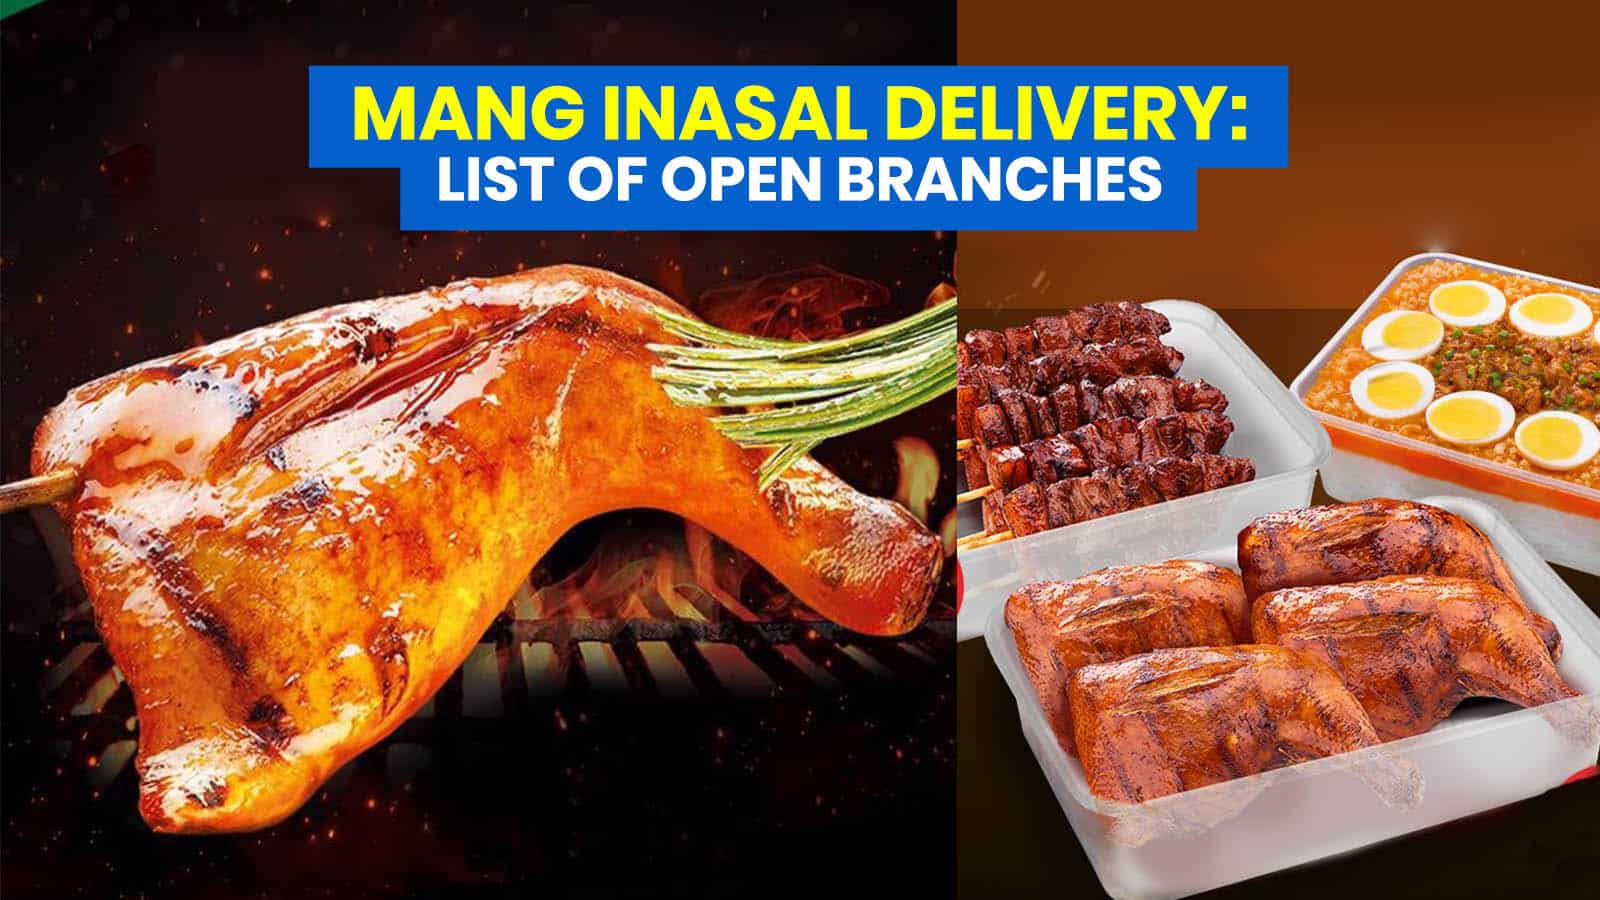 MANG INASAL DELIVERY: List of Open Branches + Ready-to-Cook Packs for Pickup